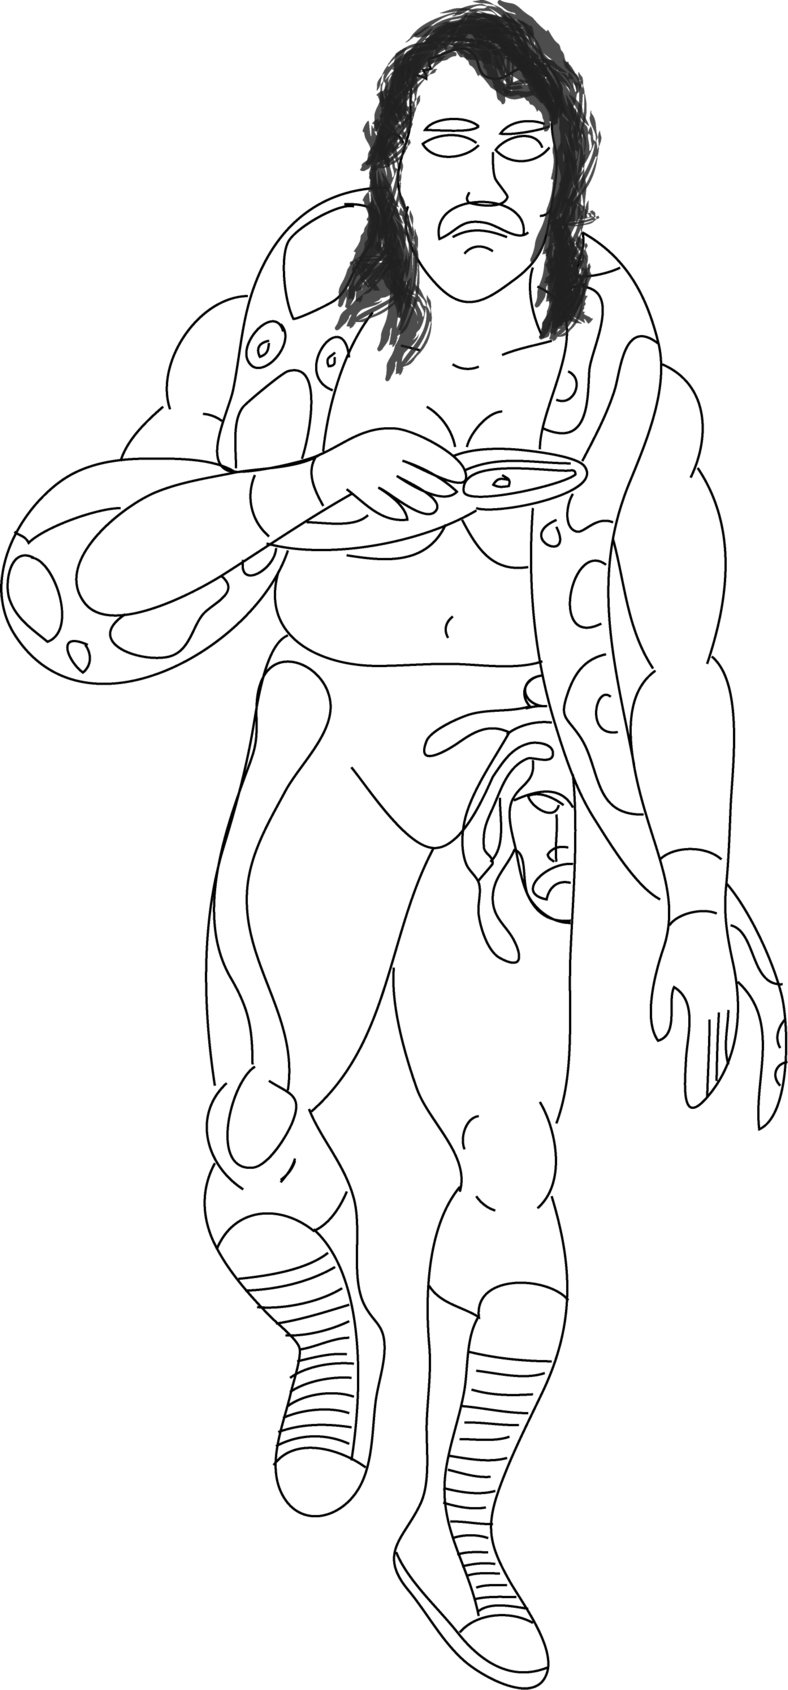 adult wwe wrestling coloring pages wwe wrestling belts coloring ... | 1690x788